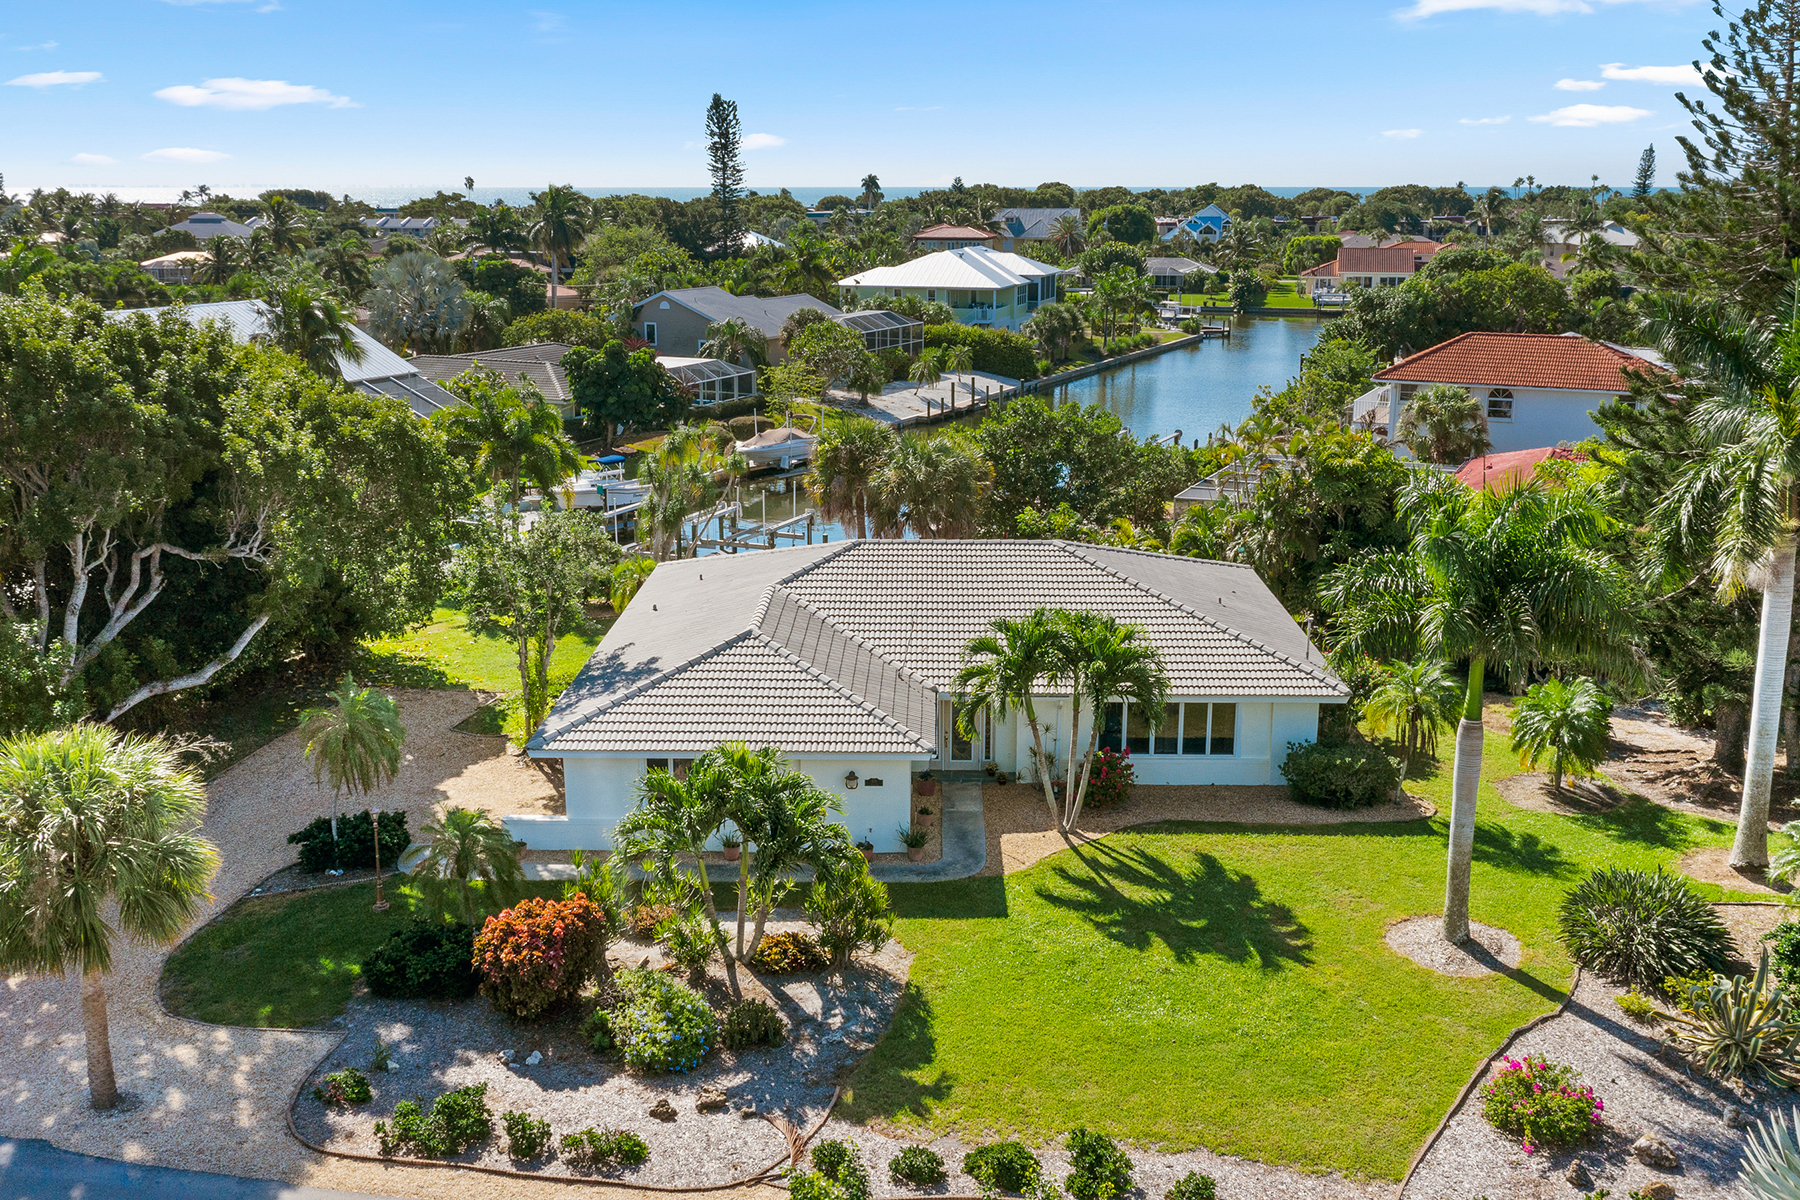 Single Family Homes for Sale at SHELL HARBOR 979 Whelk Drive, Sanibel, Florida 33957 United States